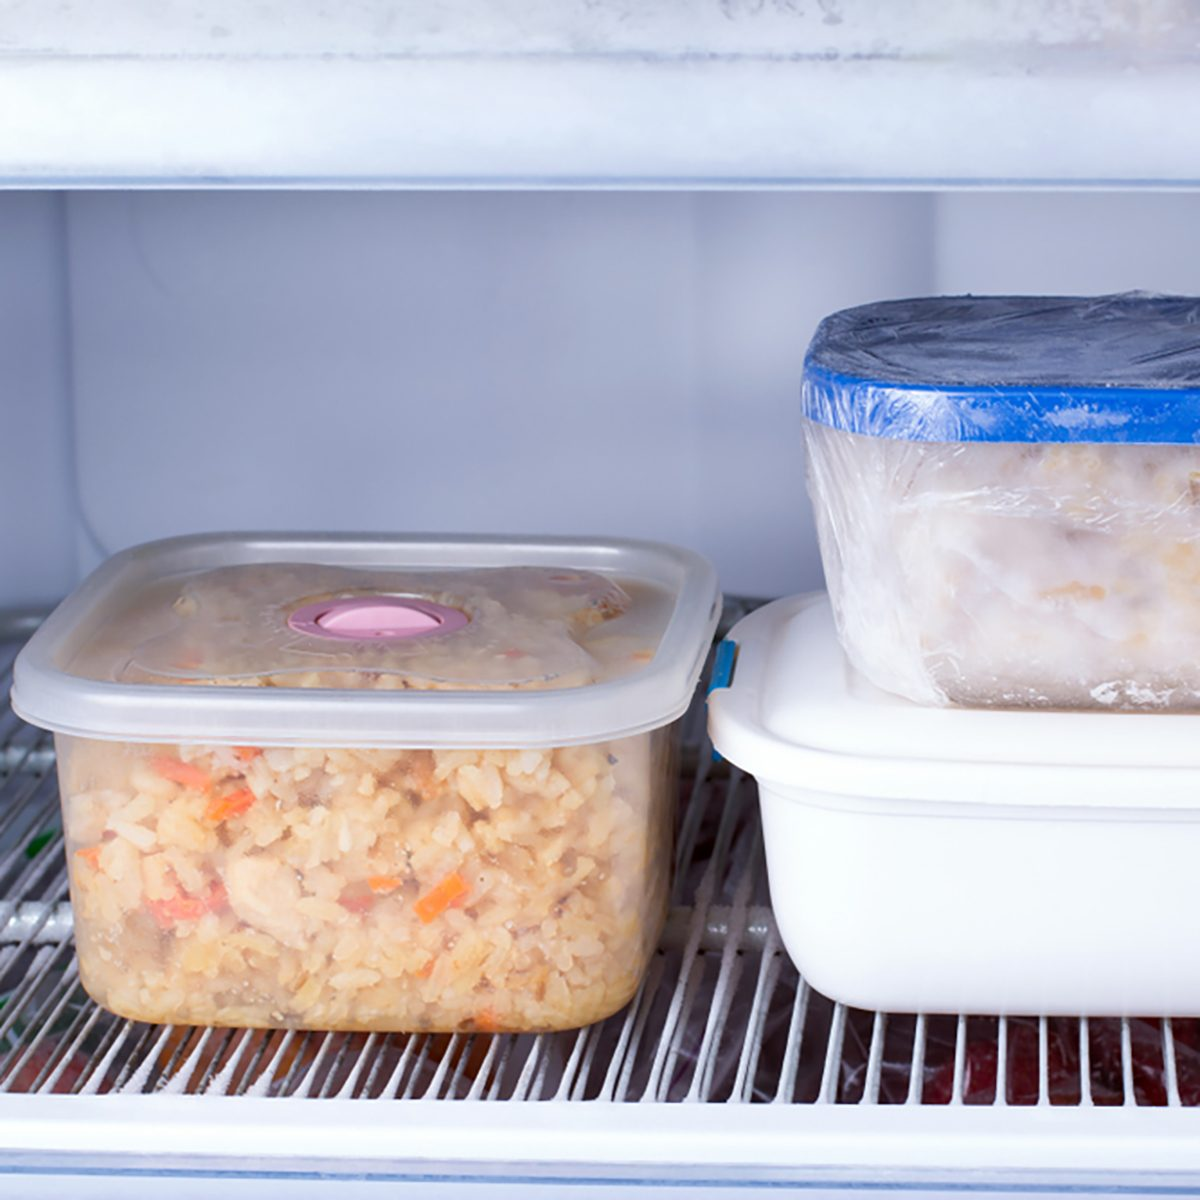 Frozen food in a container in the freezer. Refrigerator with frozen food. Ready meal;